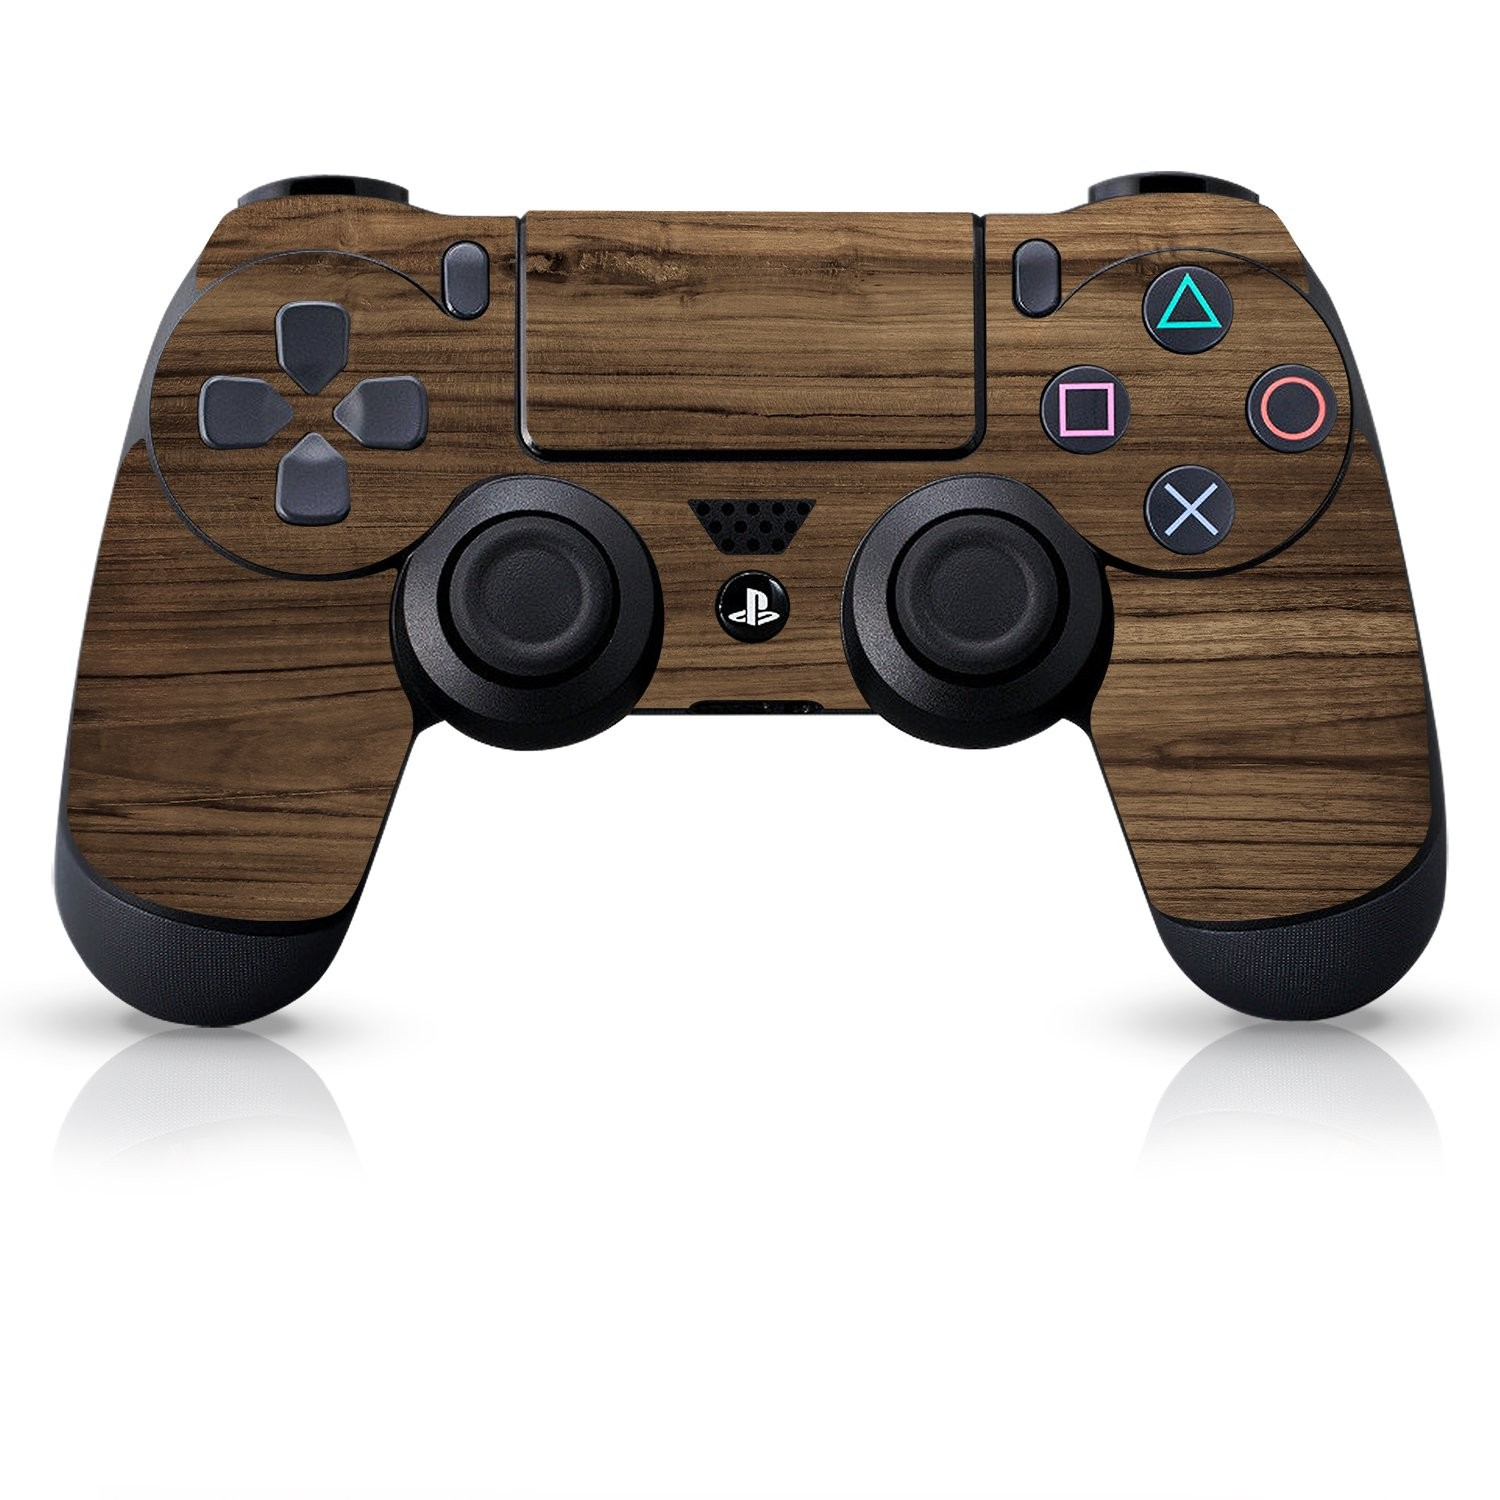 Officially Licensed Controller Skin - Wood Grain